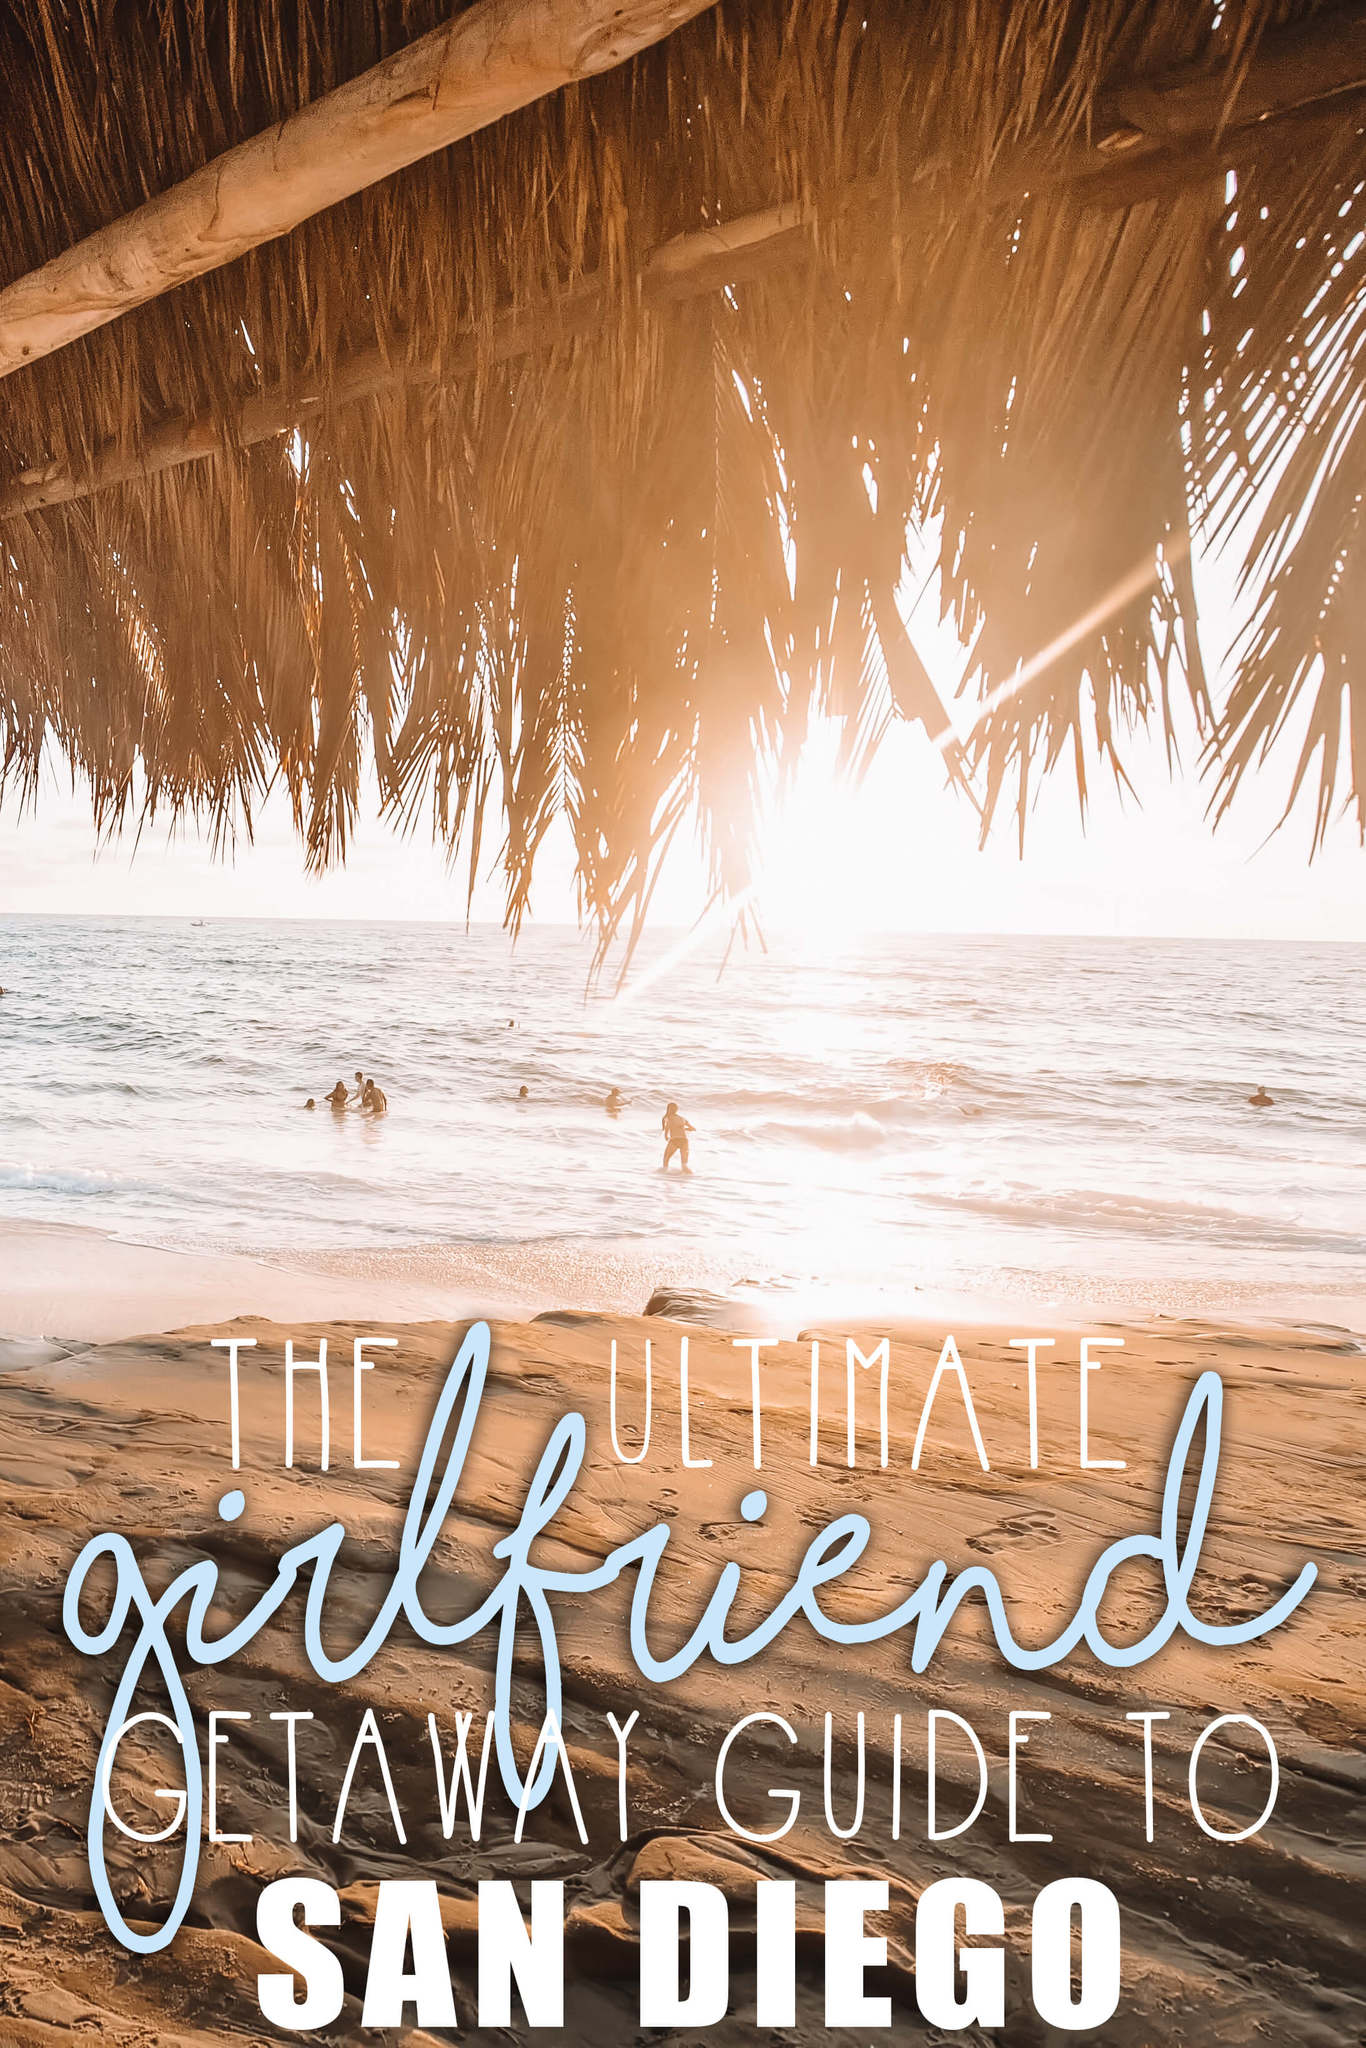 The-ultimate-girlfriend-guide-to-san-diego